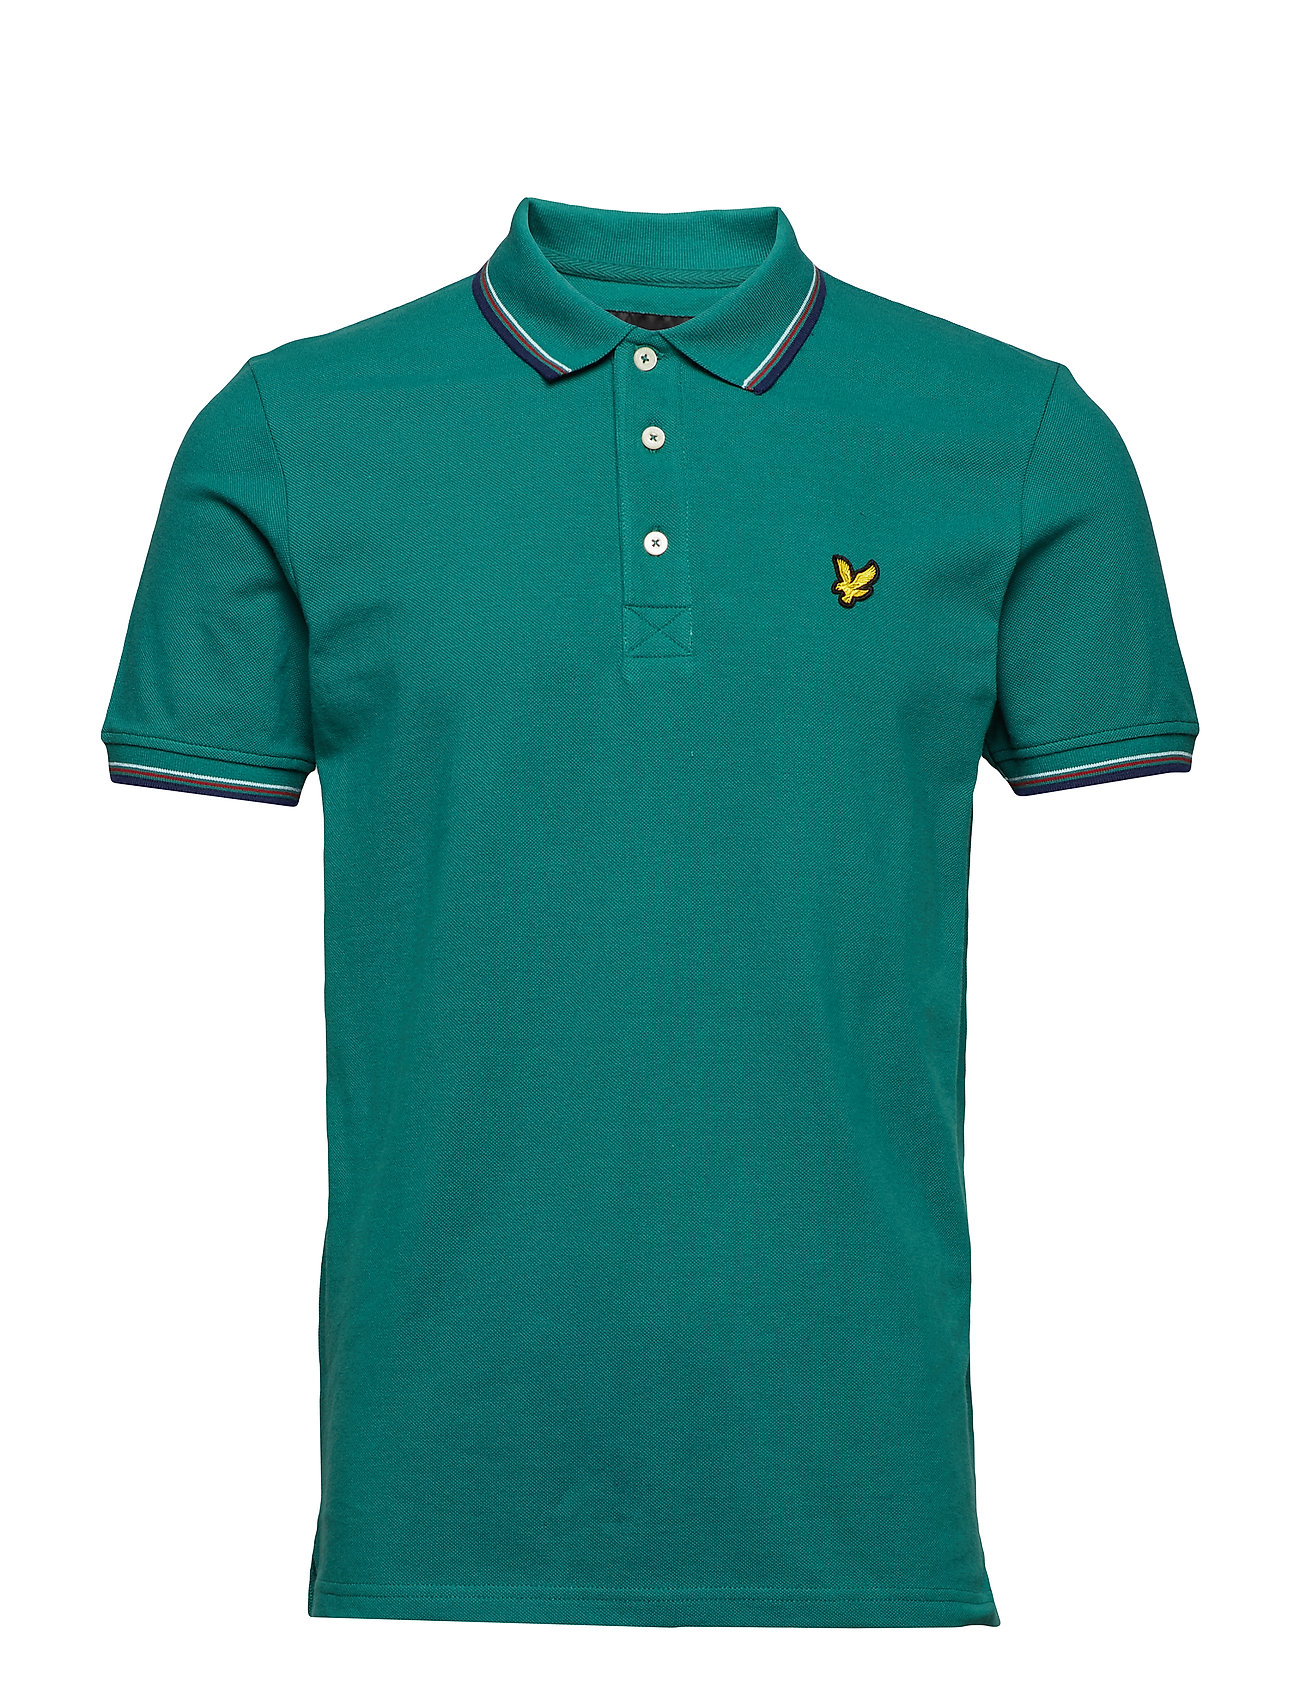 Lyle & Scott Tipped Polo Shirt Ögrönlar